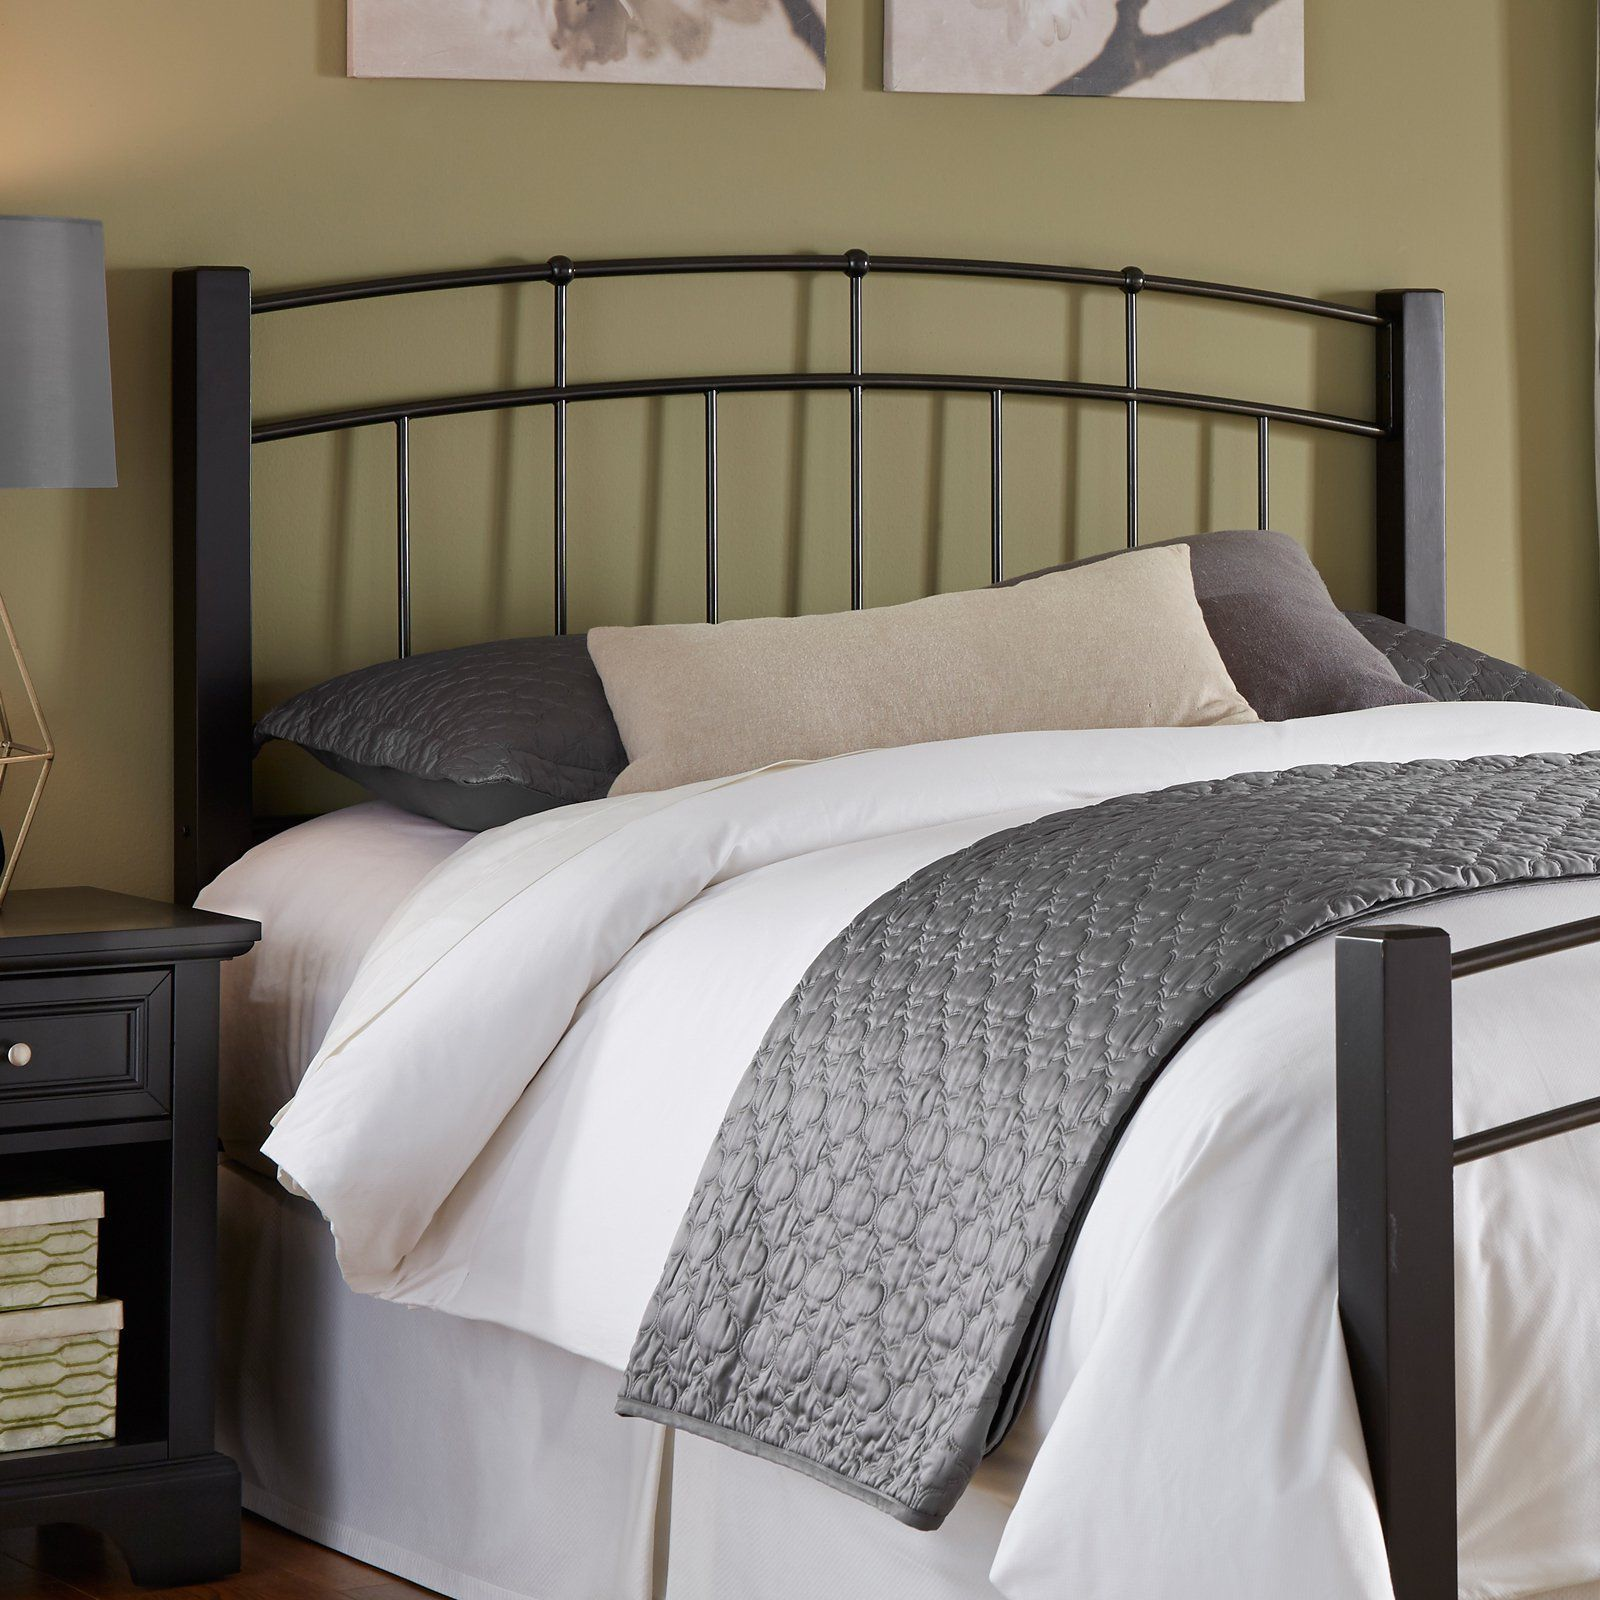 Fashion Bed Group Scottsdale Headboard B92247 Bed